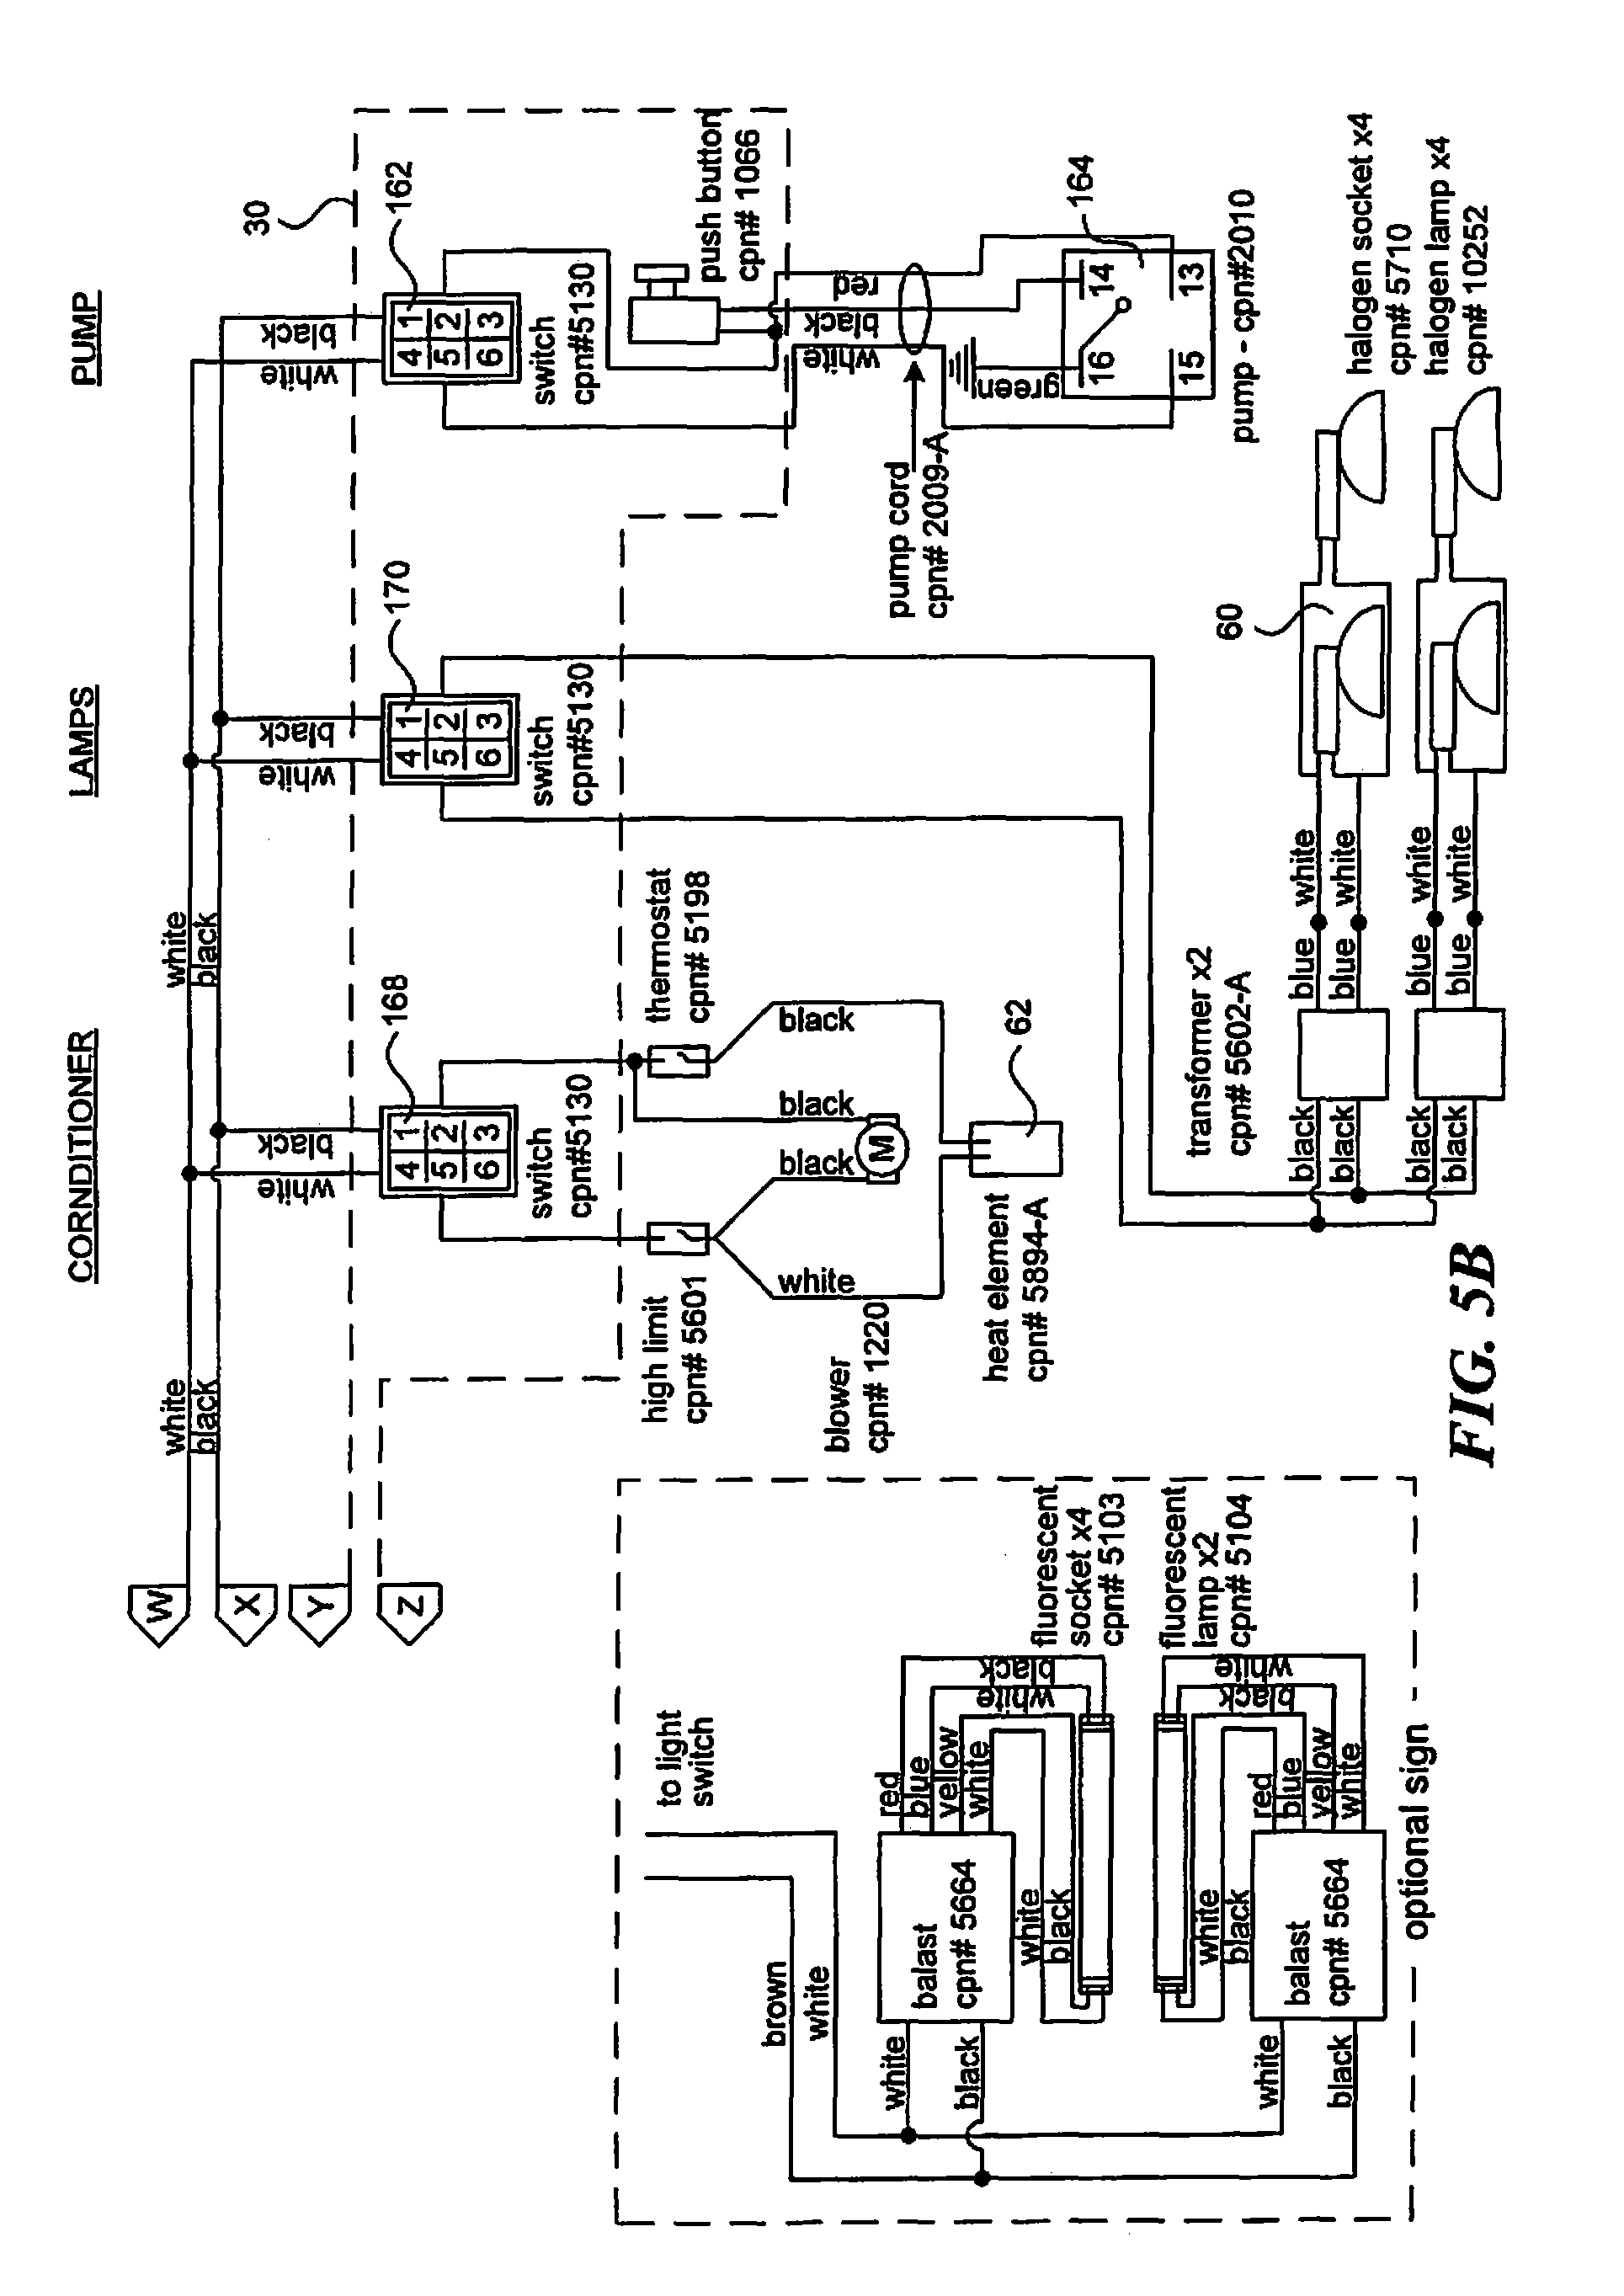 Ansul System Typical Wiring Diagram